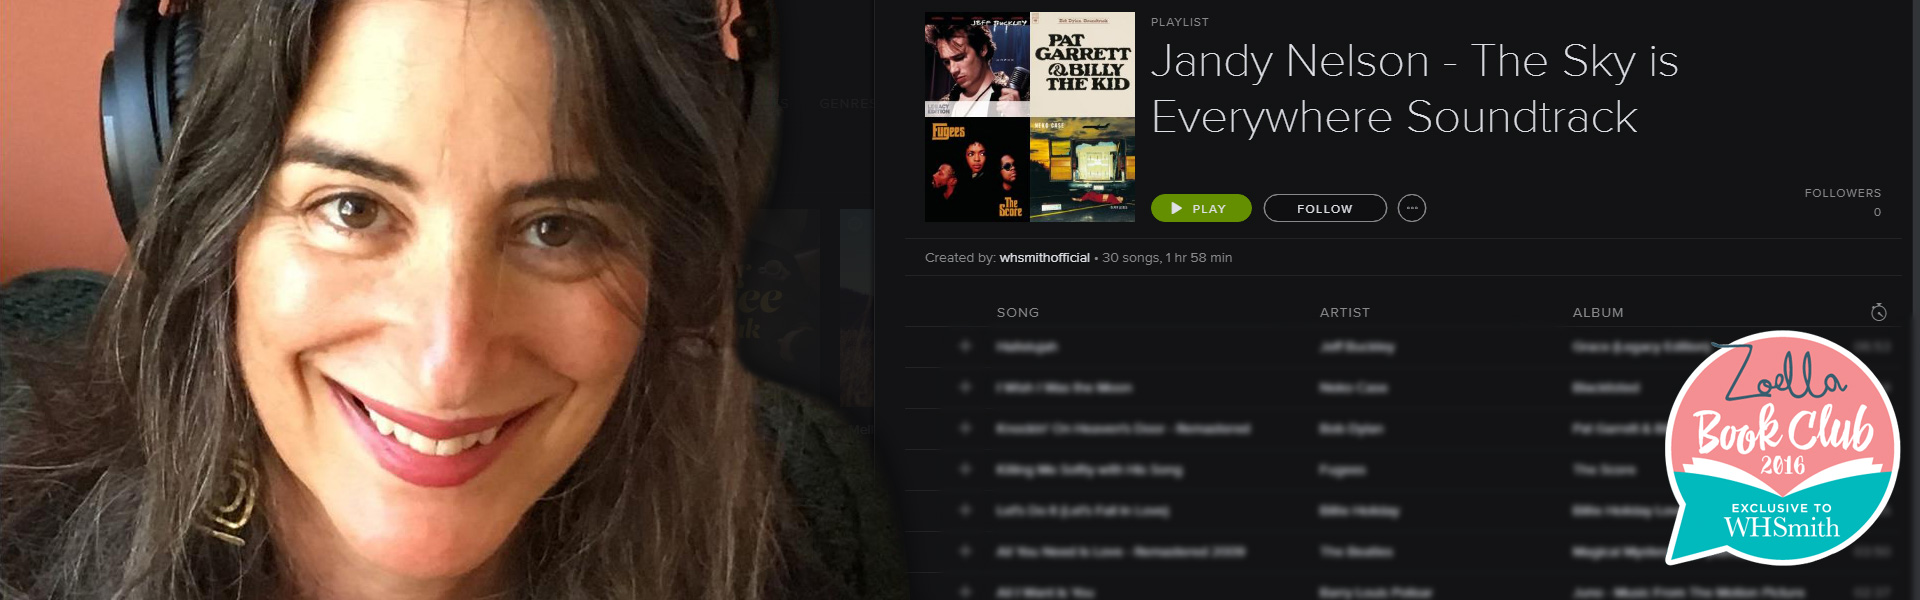 Jandy Nelson: The Sky is Everywhere Soundtrack